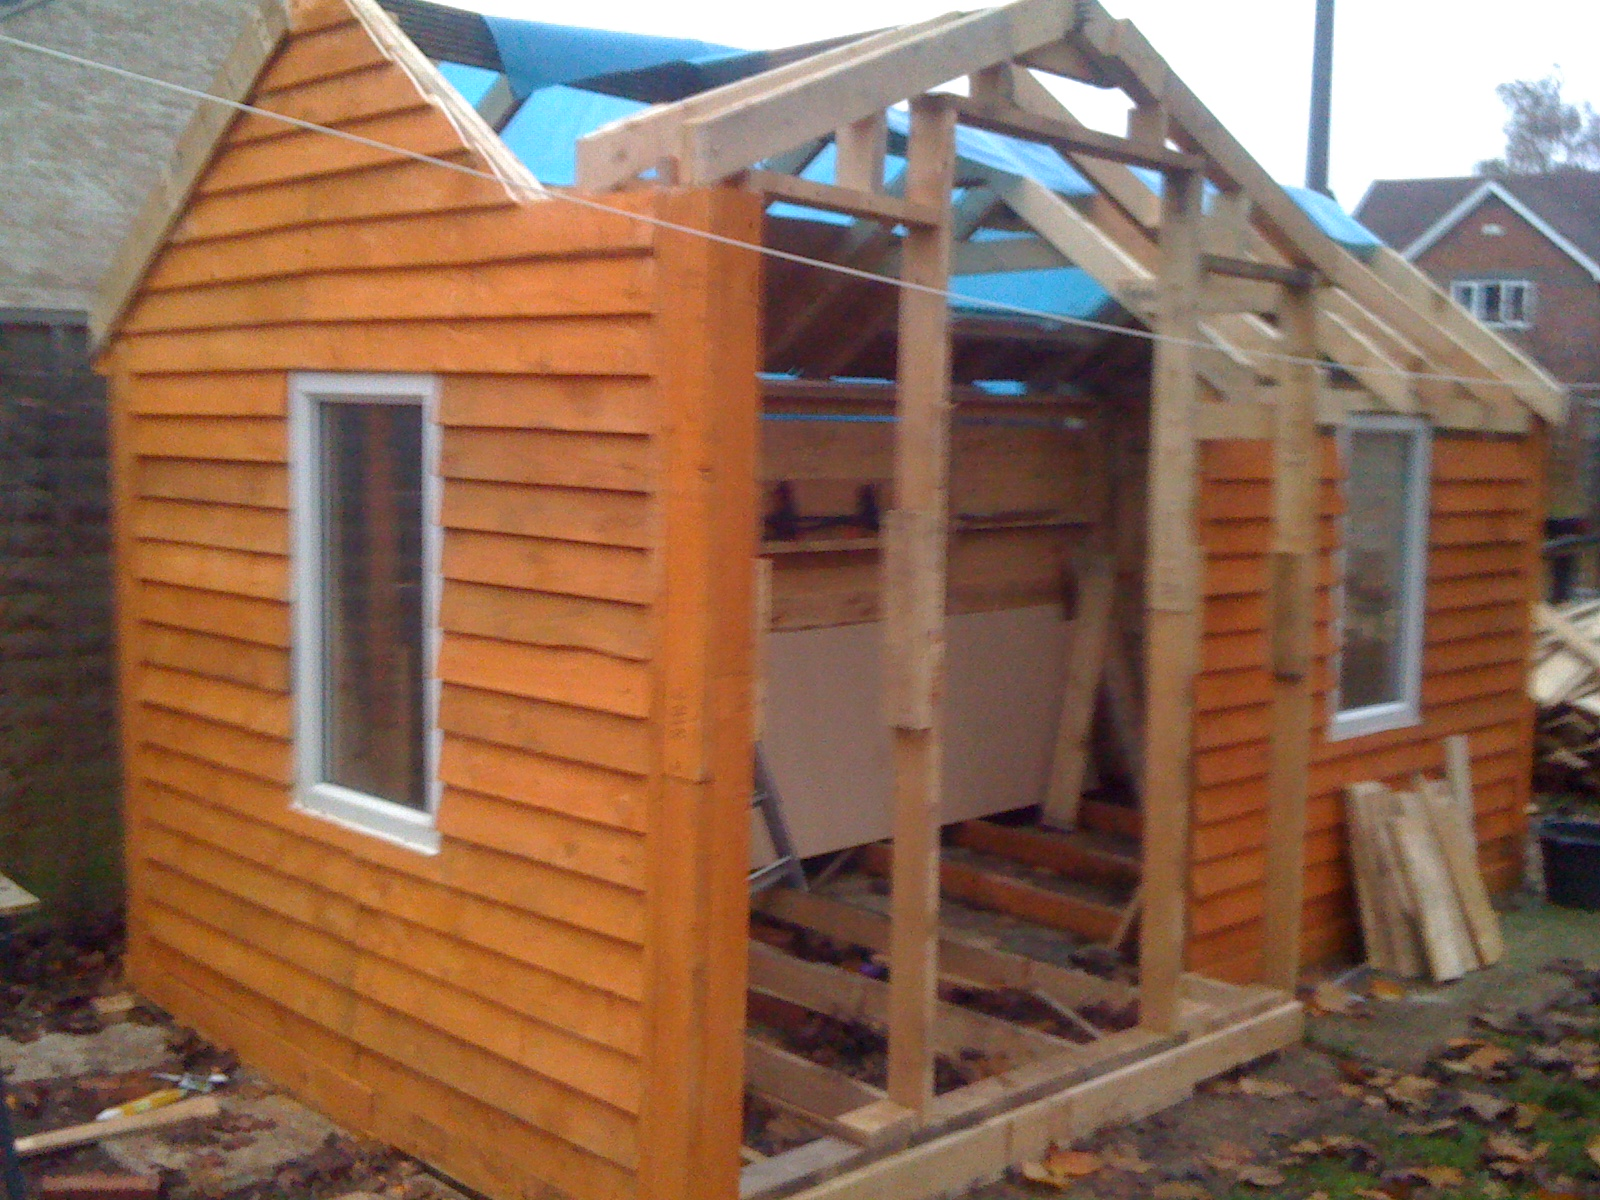 homemade shed from pallets: steves2make.yolasite.com/homemade-shed-building-pictures.php